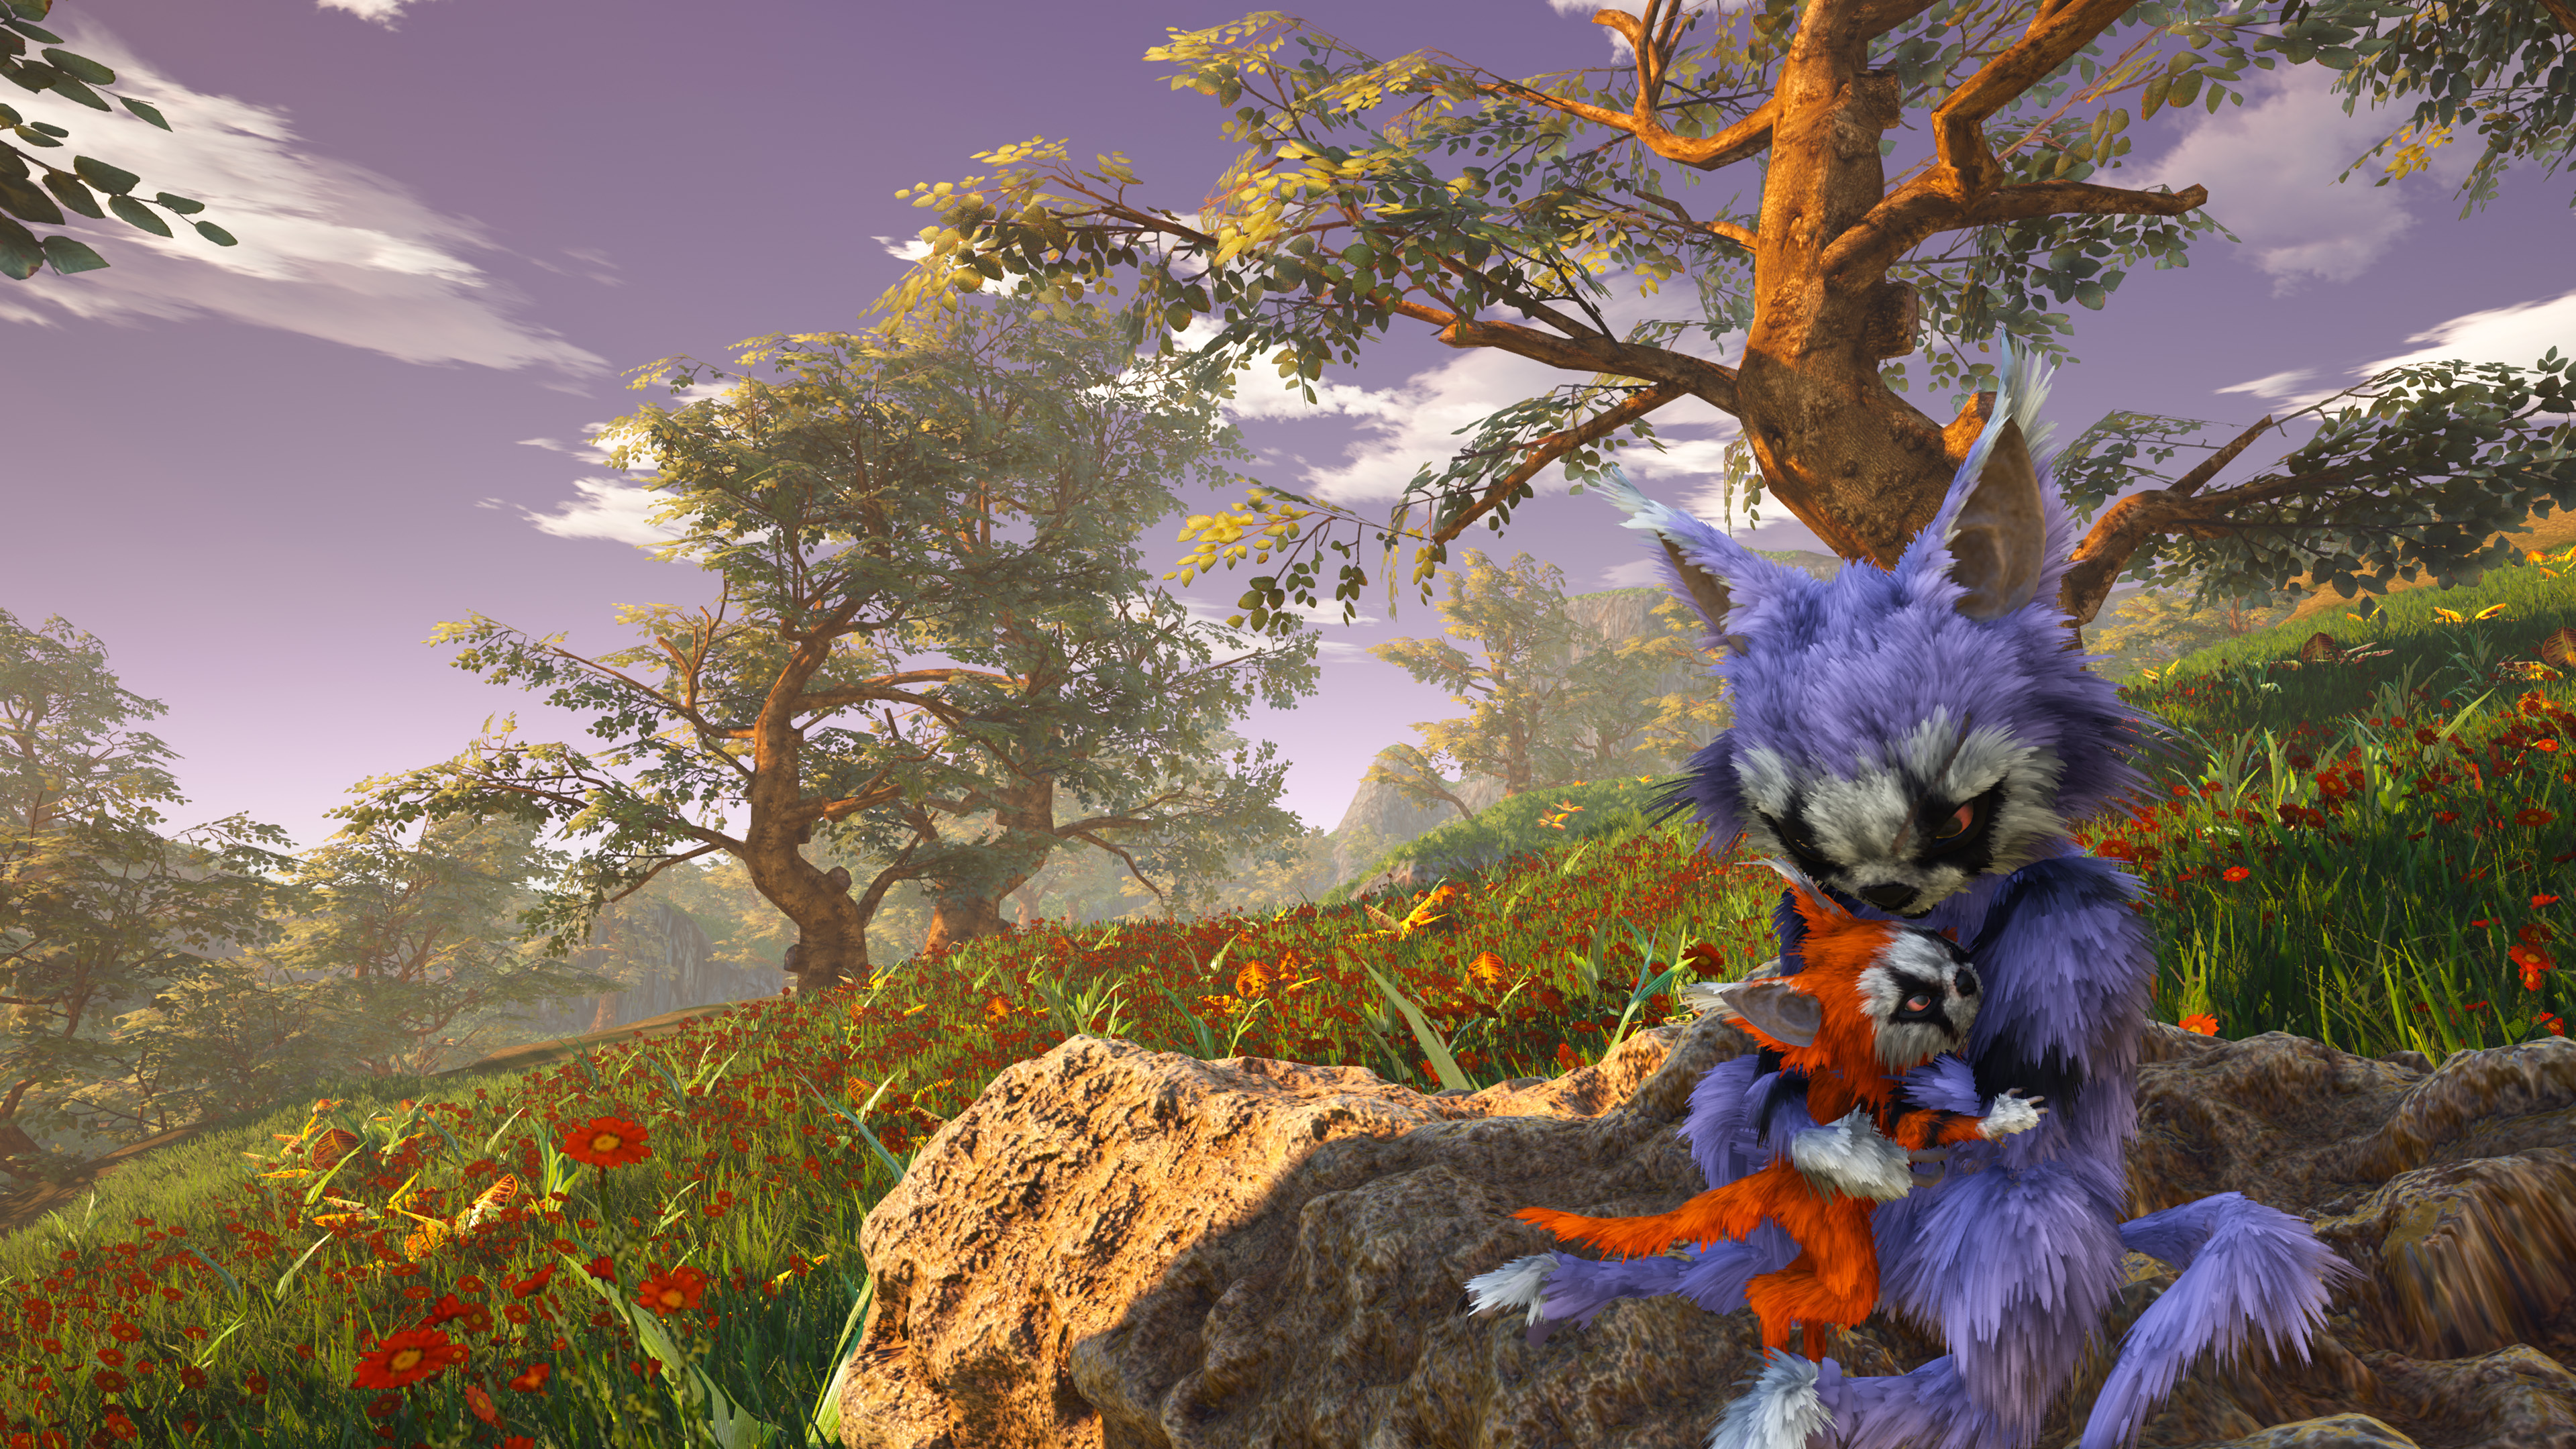 Open-world RPG game Biomutant gets new gameplay trailer